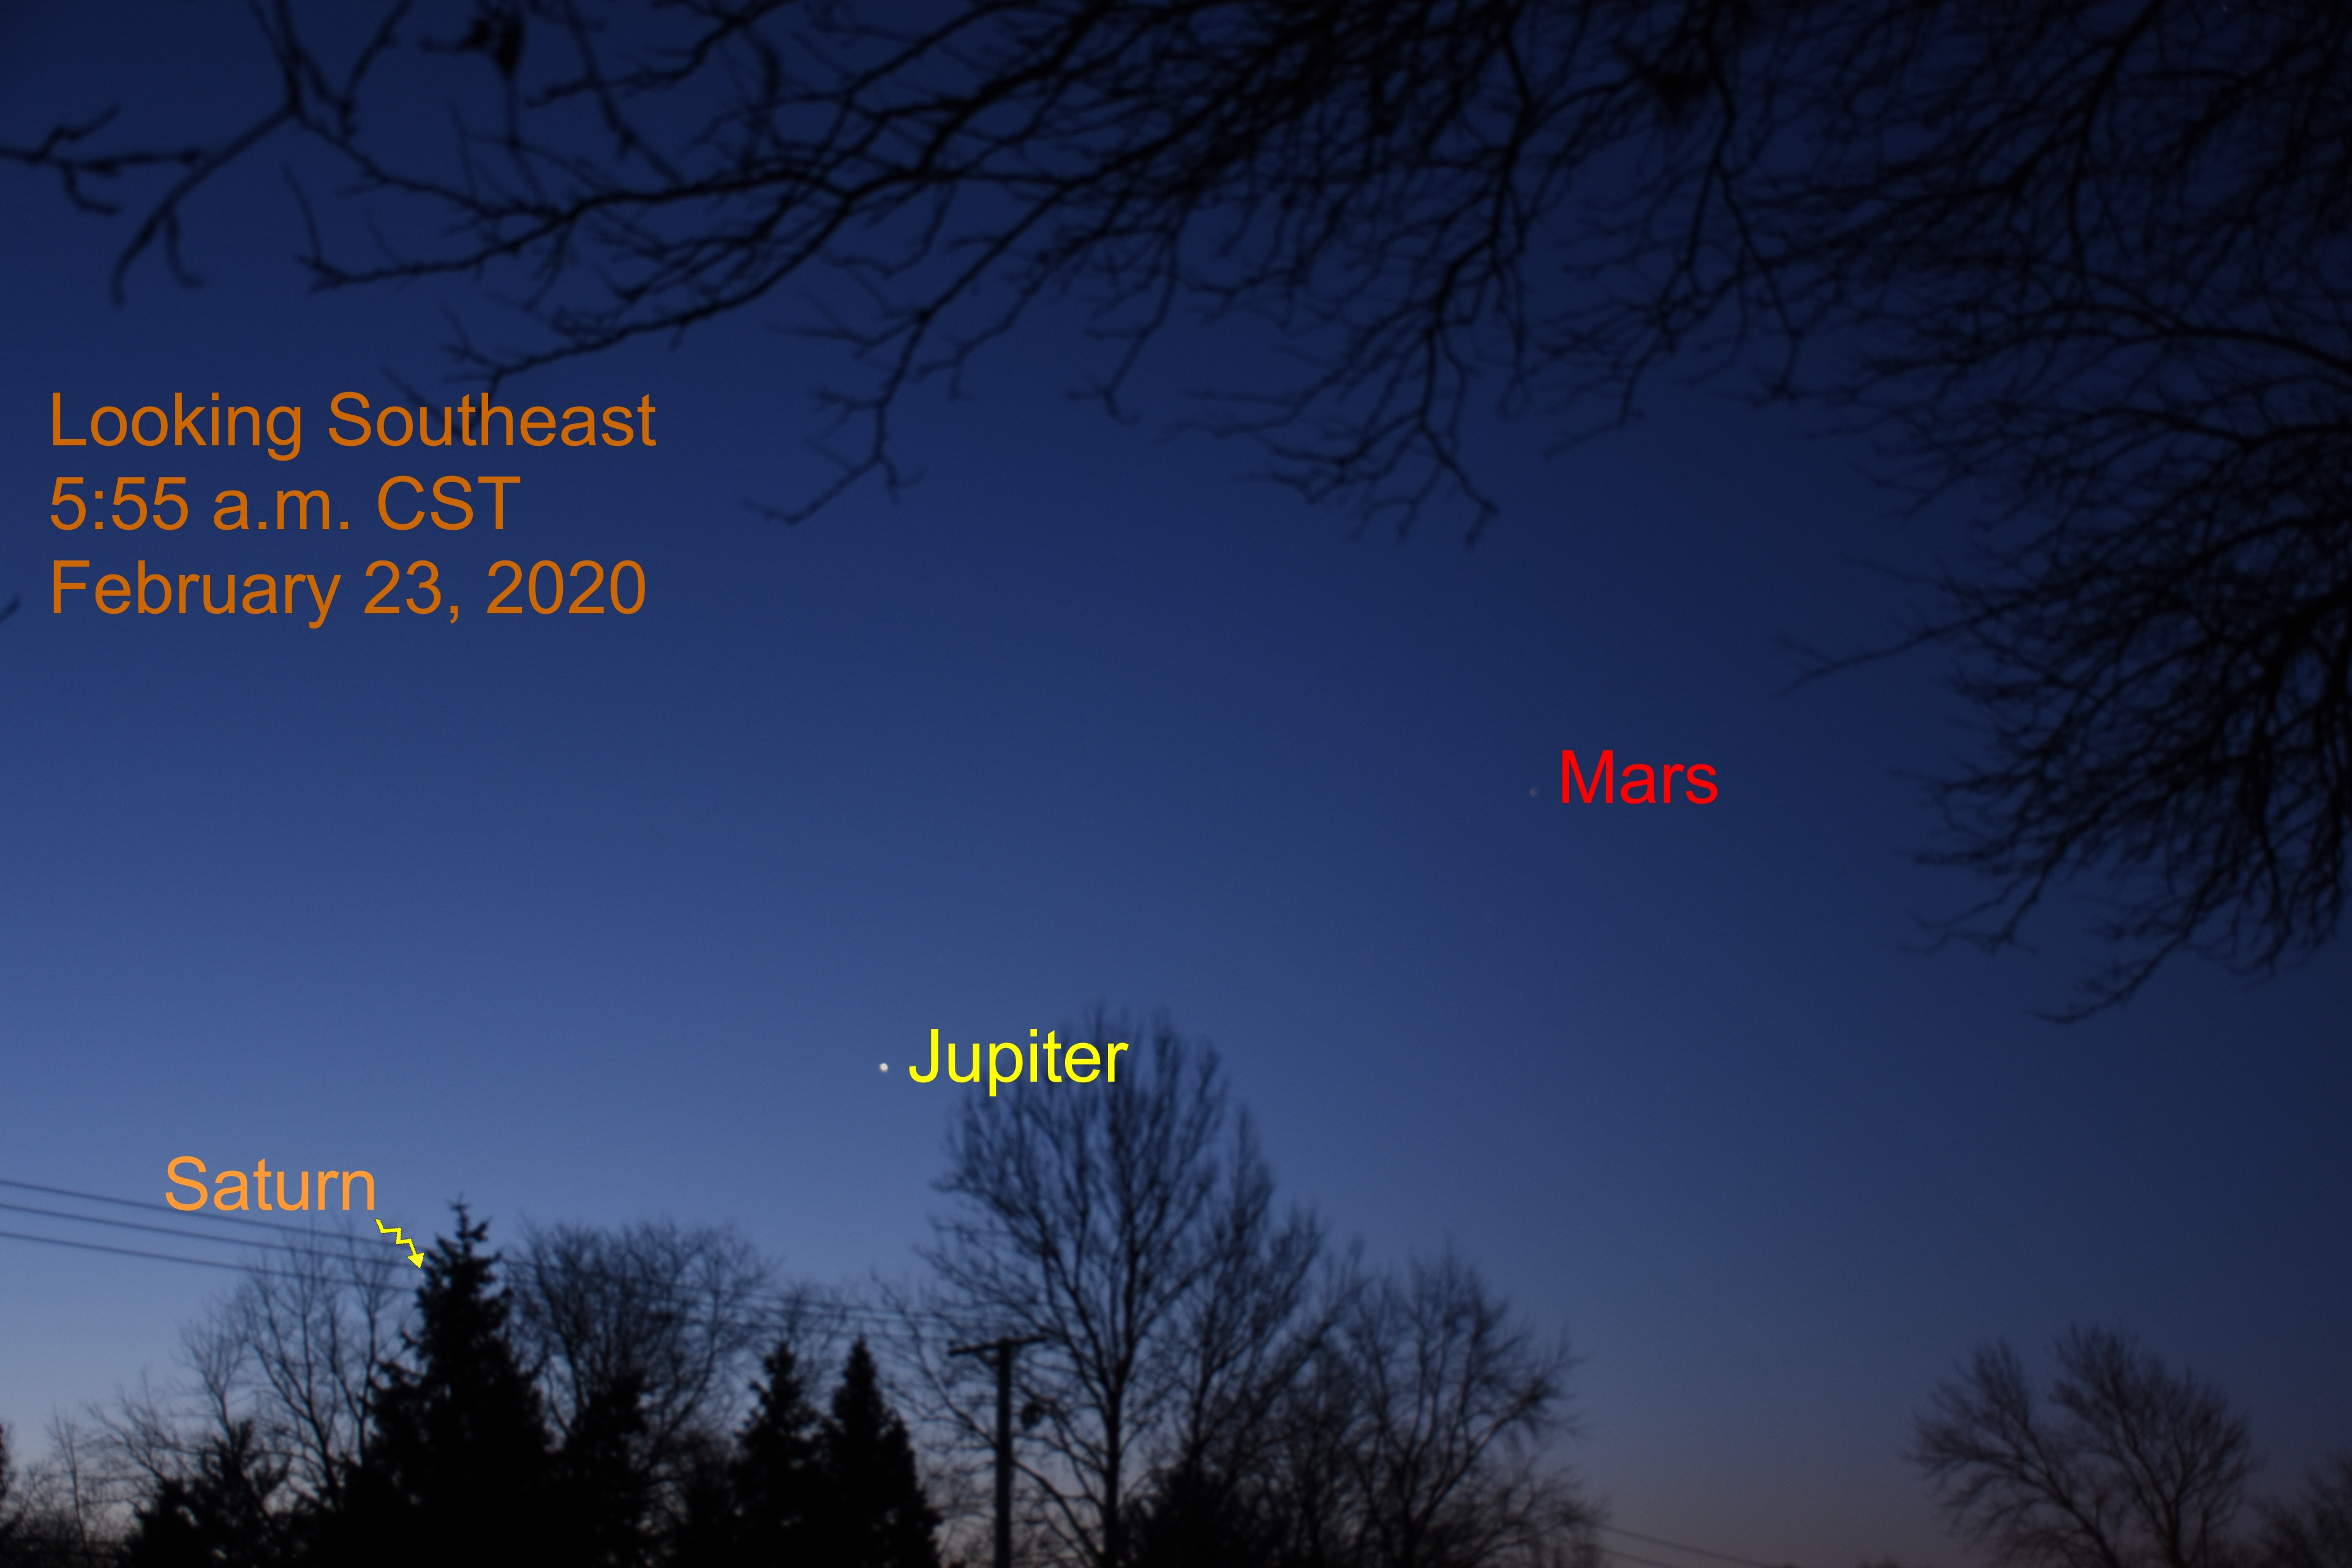 2020, February 23: Jupiter, Mars and Saturn